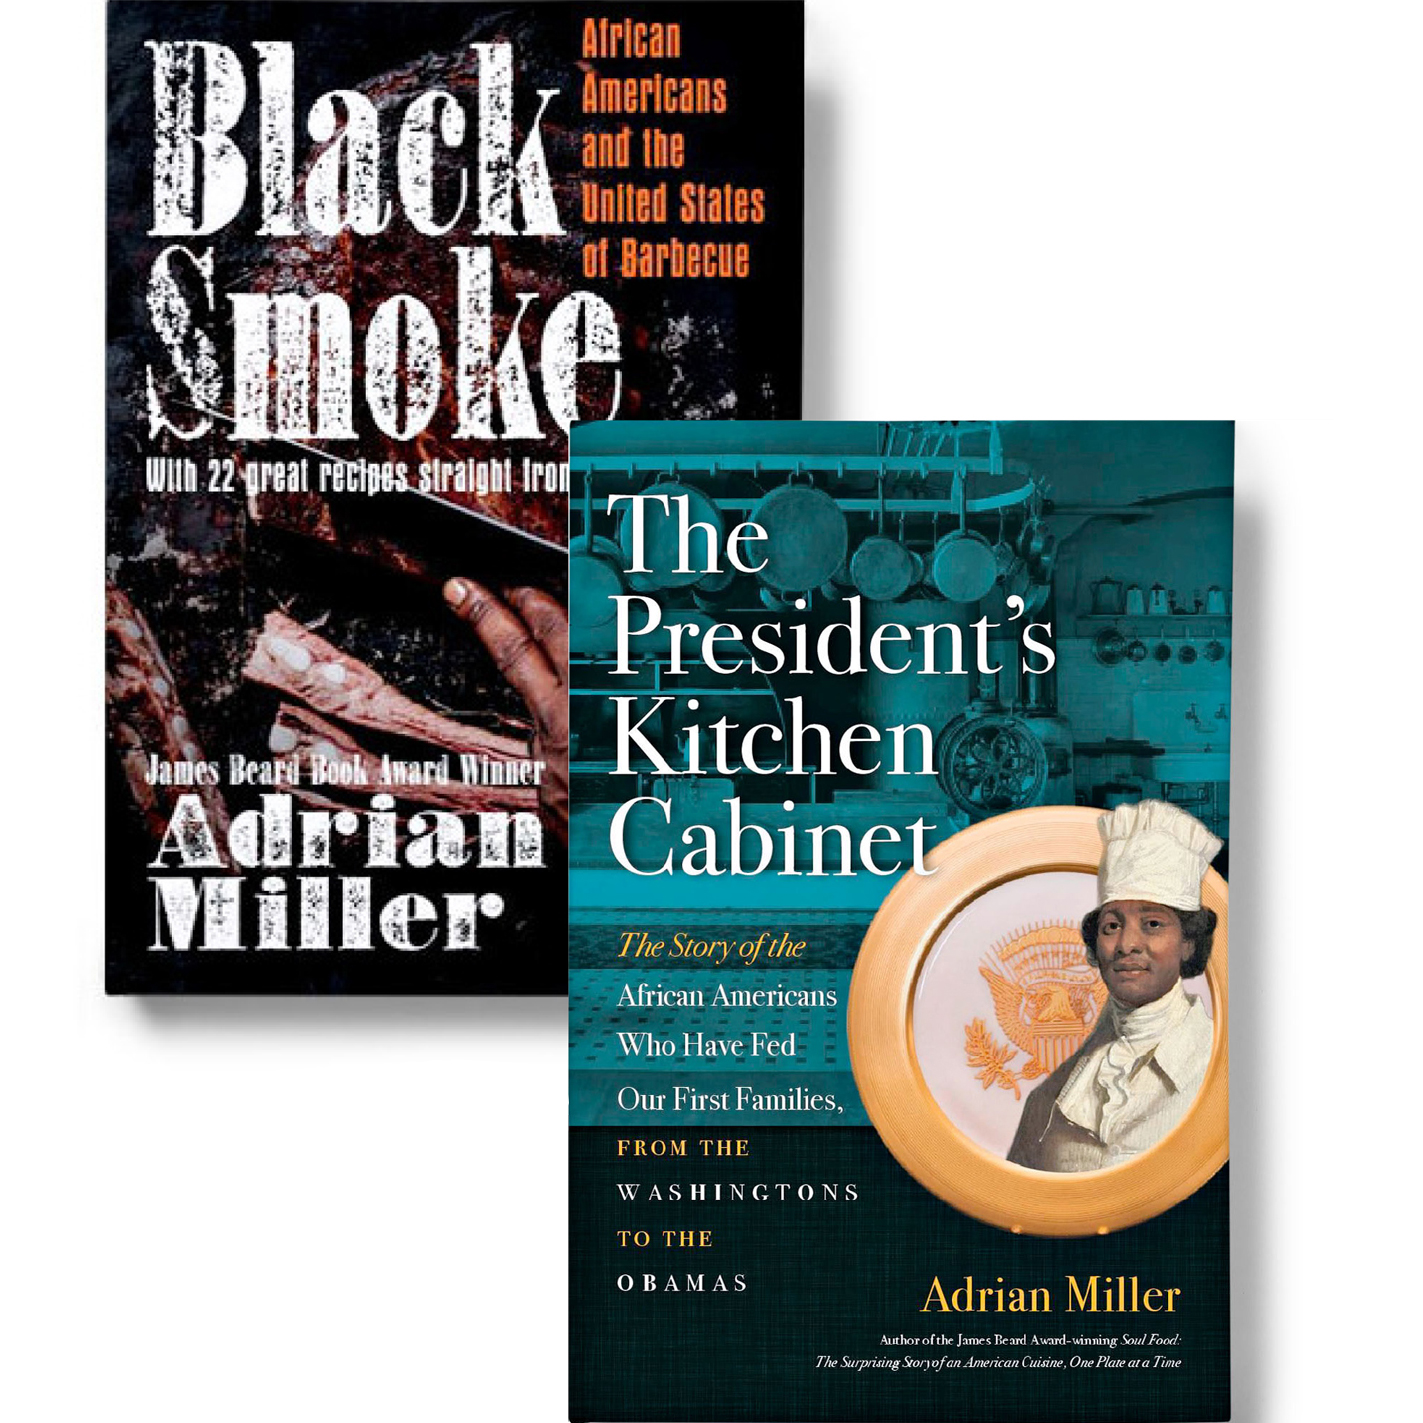 adrian miller book covers